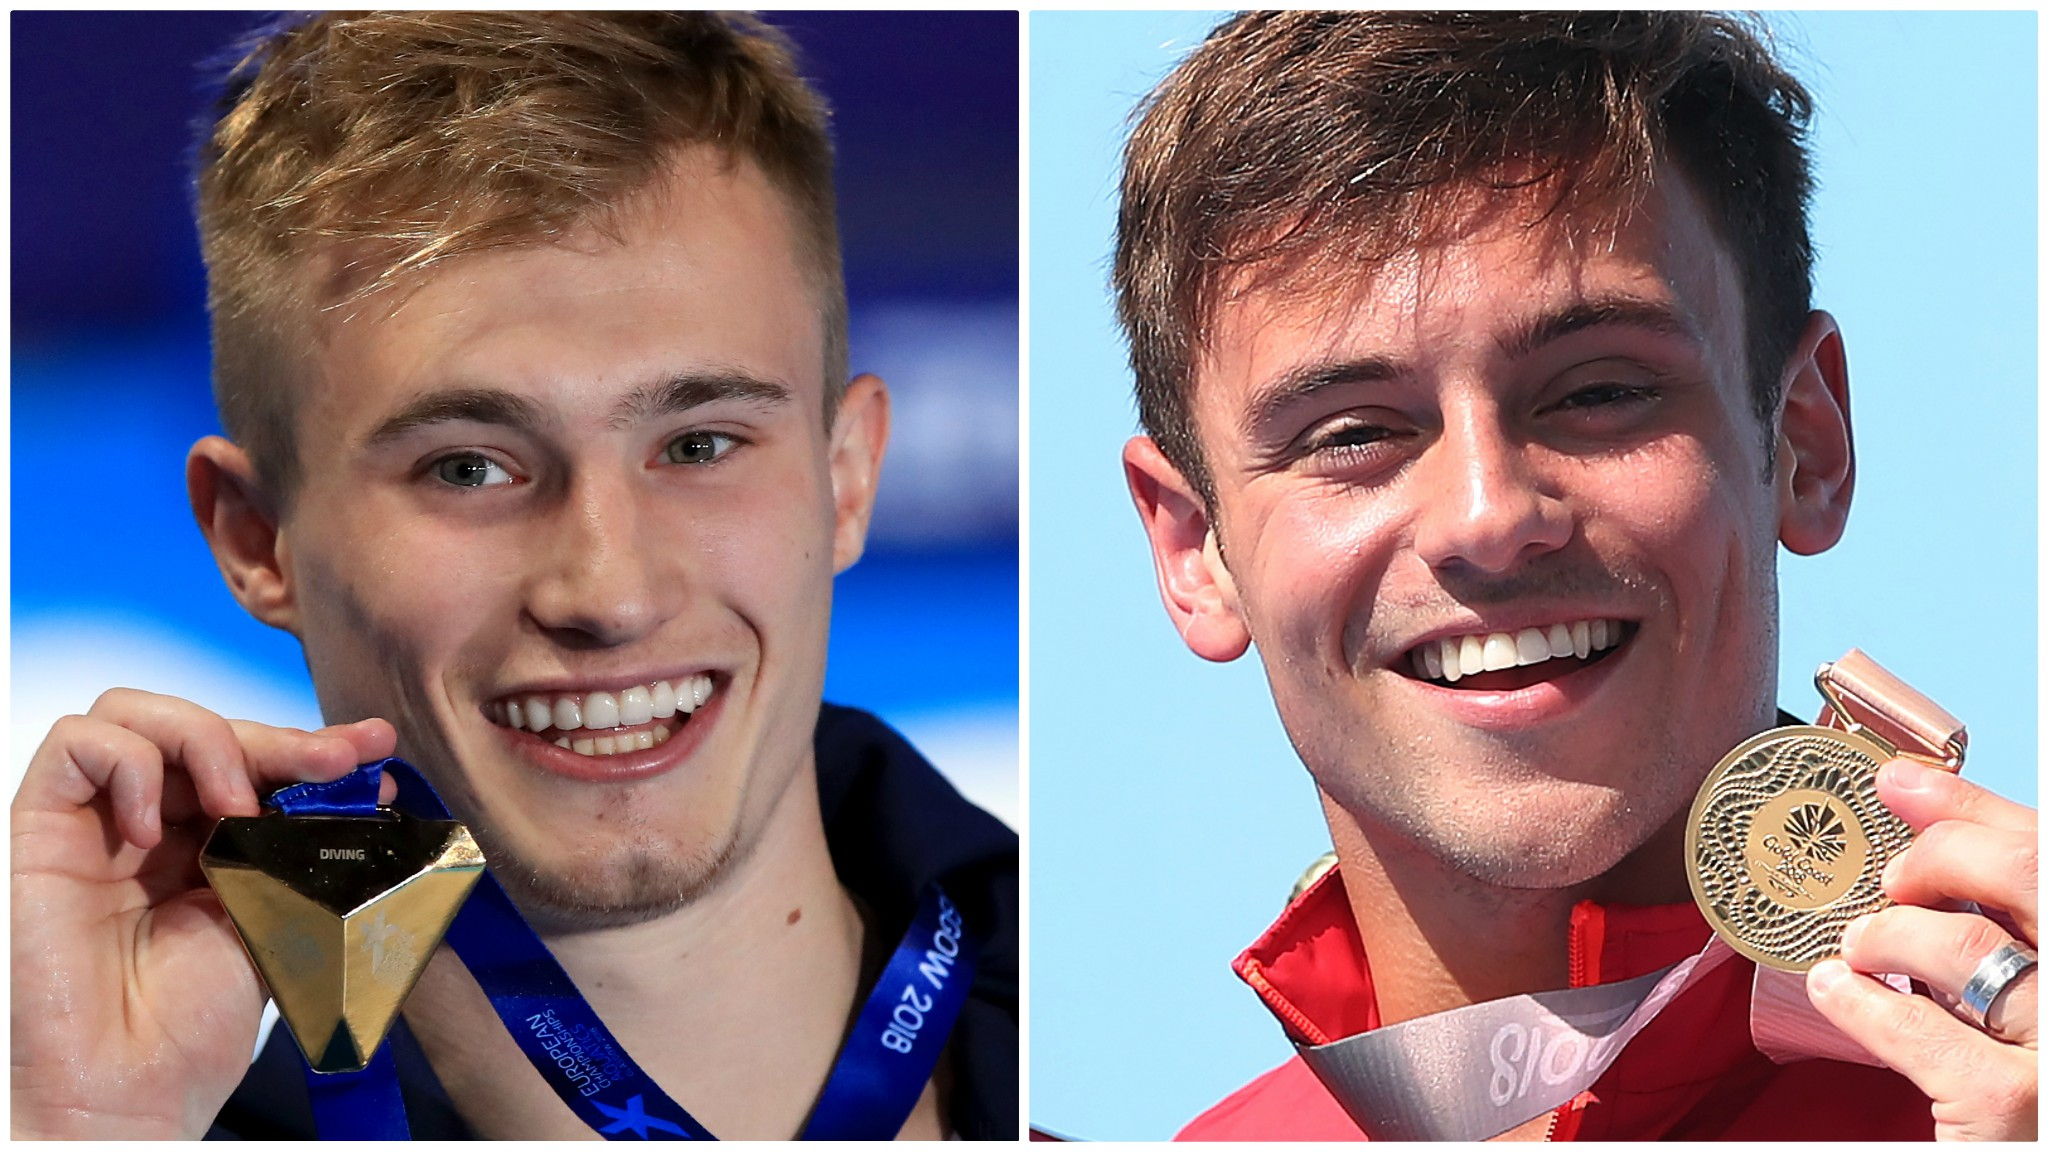 Tom Daley & Jack Laugher change diving partners ahead of Tokyo 2020